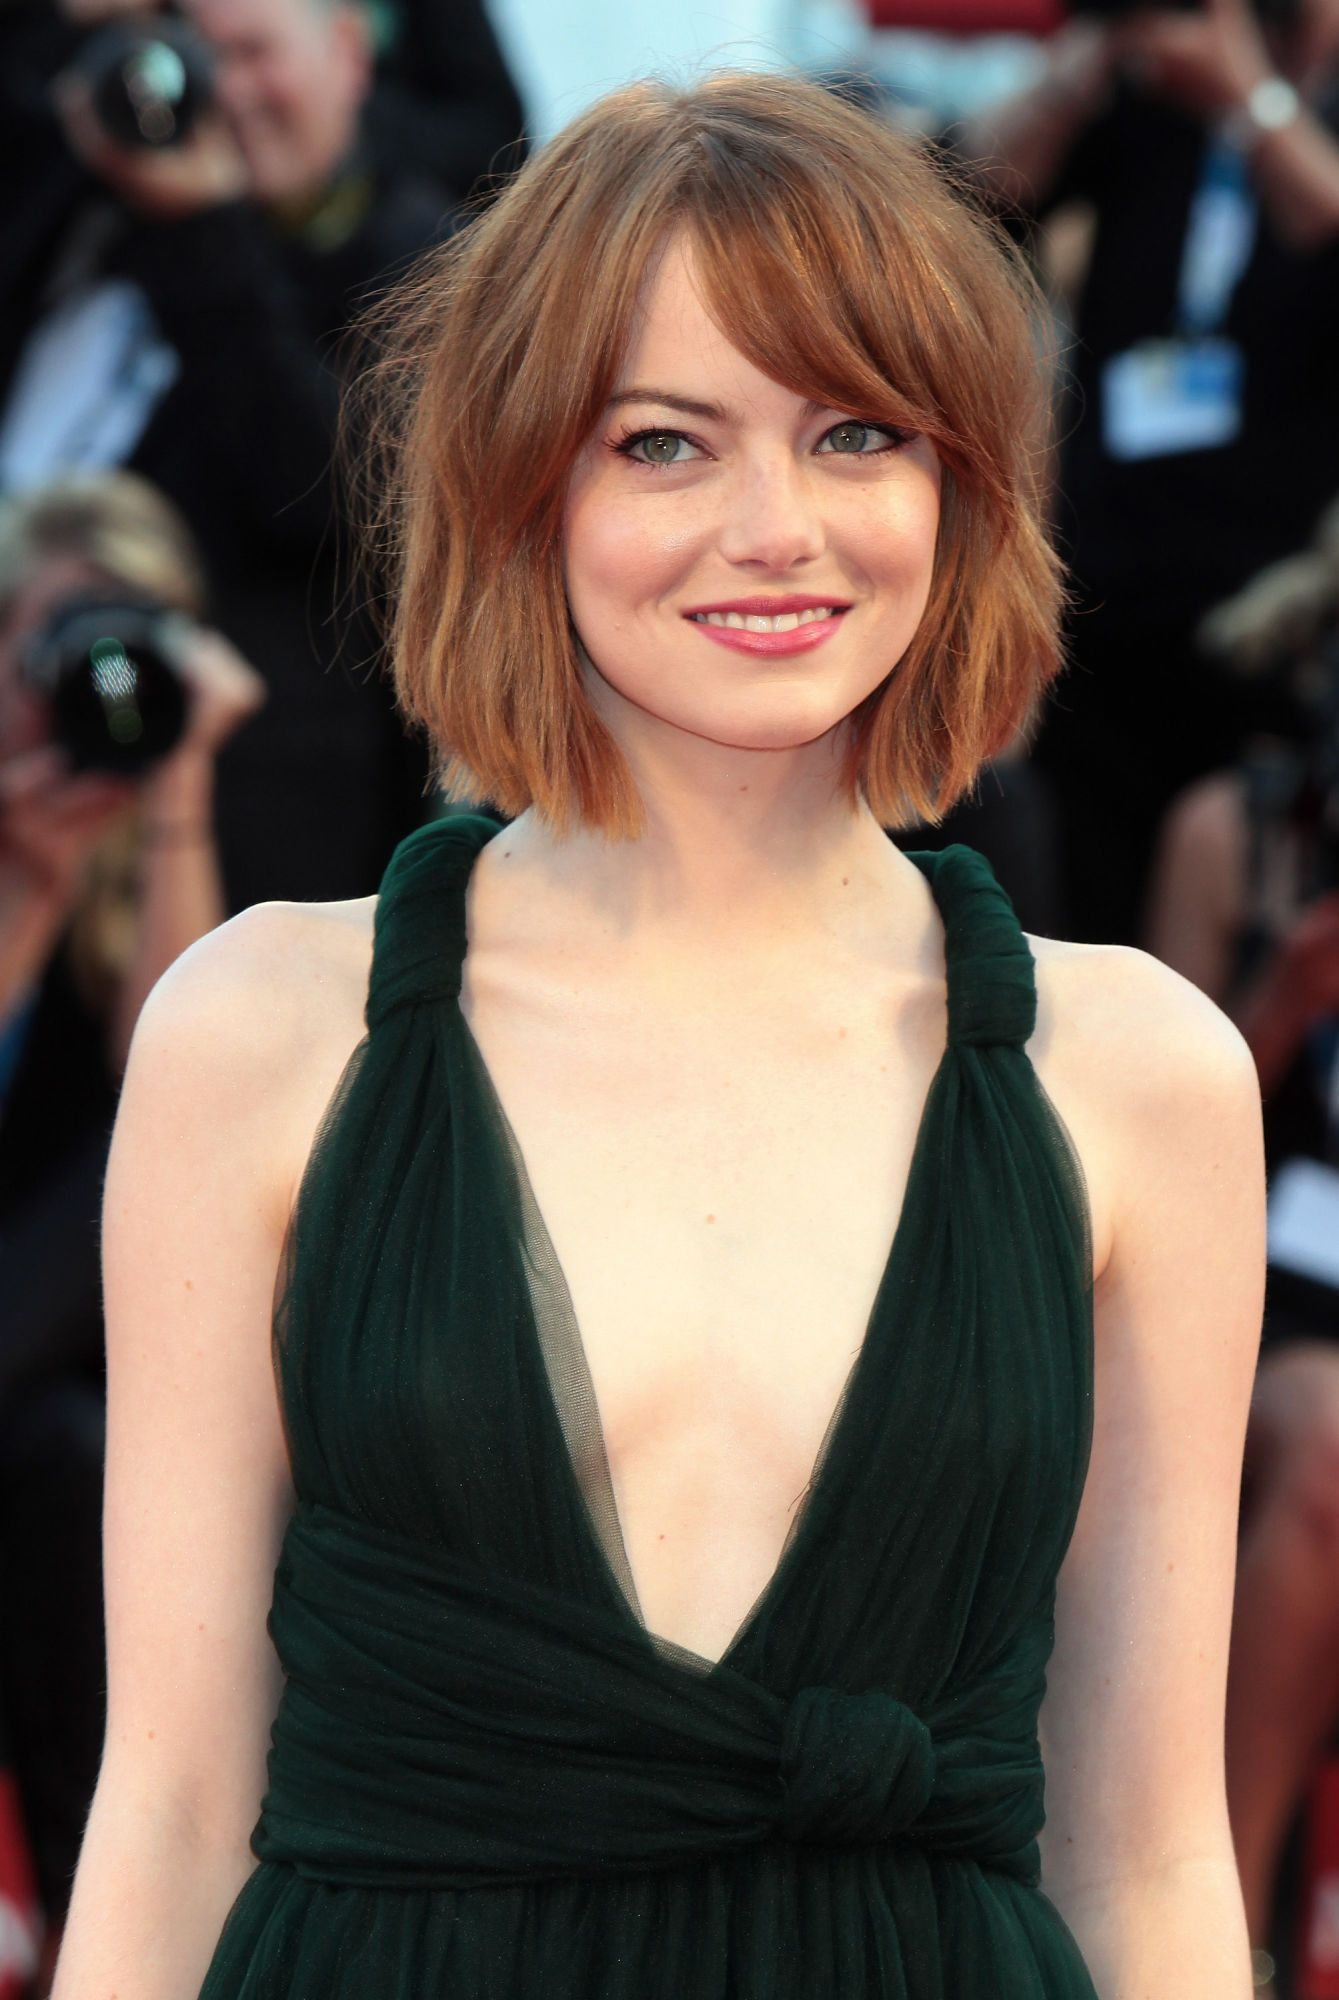 Check out this collection of hot and stunning pictures of Emma Stone as she will leave you flabbergasted. Her beautiful features and sweet smile is everything to make her look awesome. Take a look!